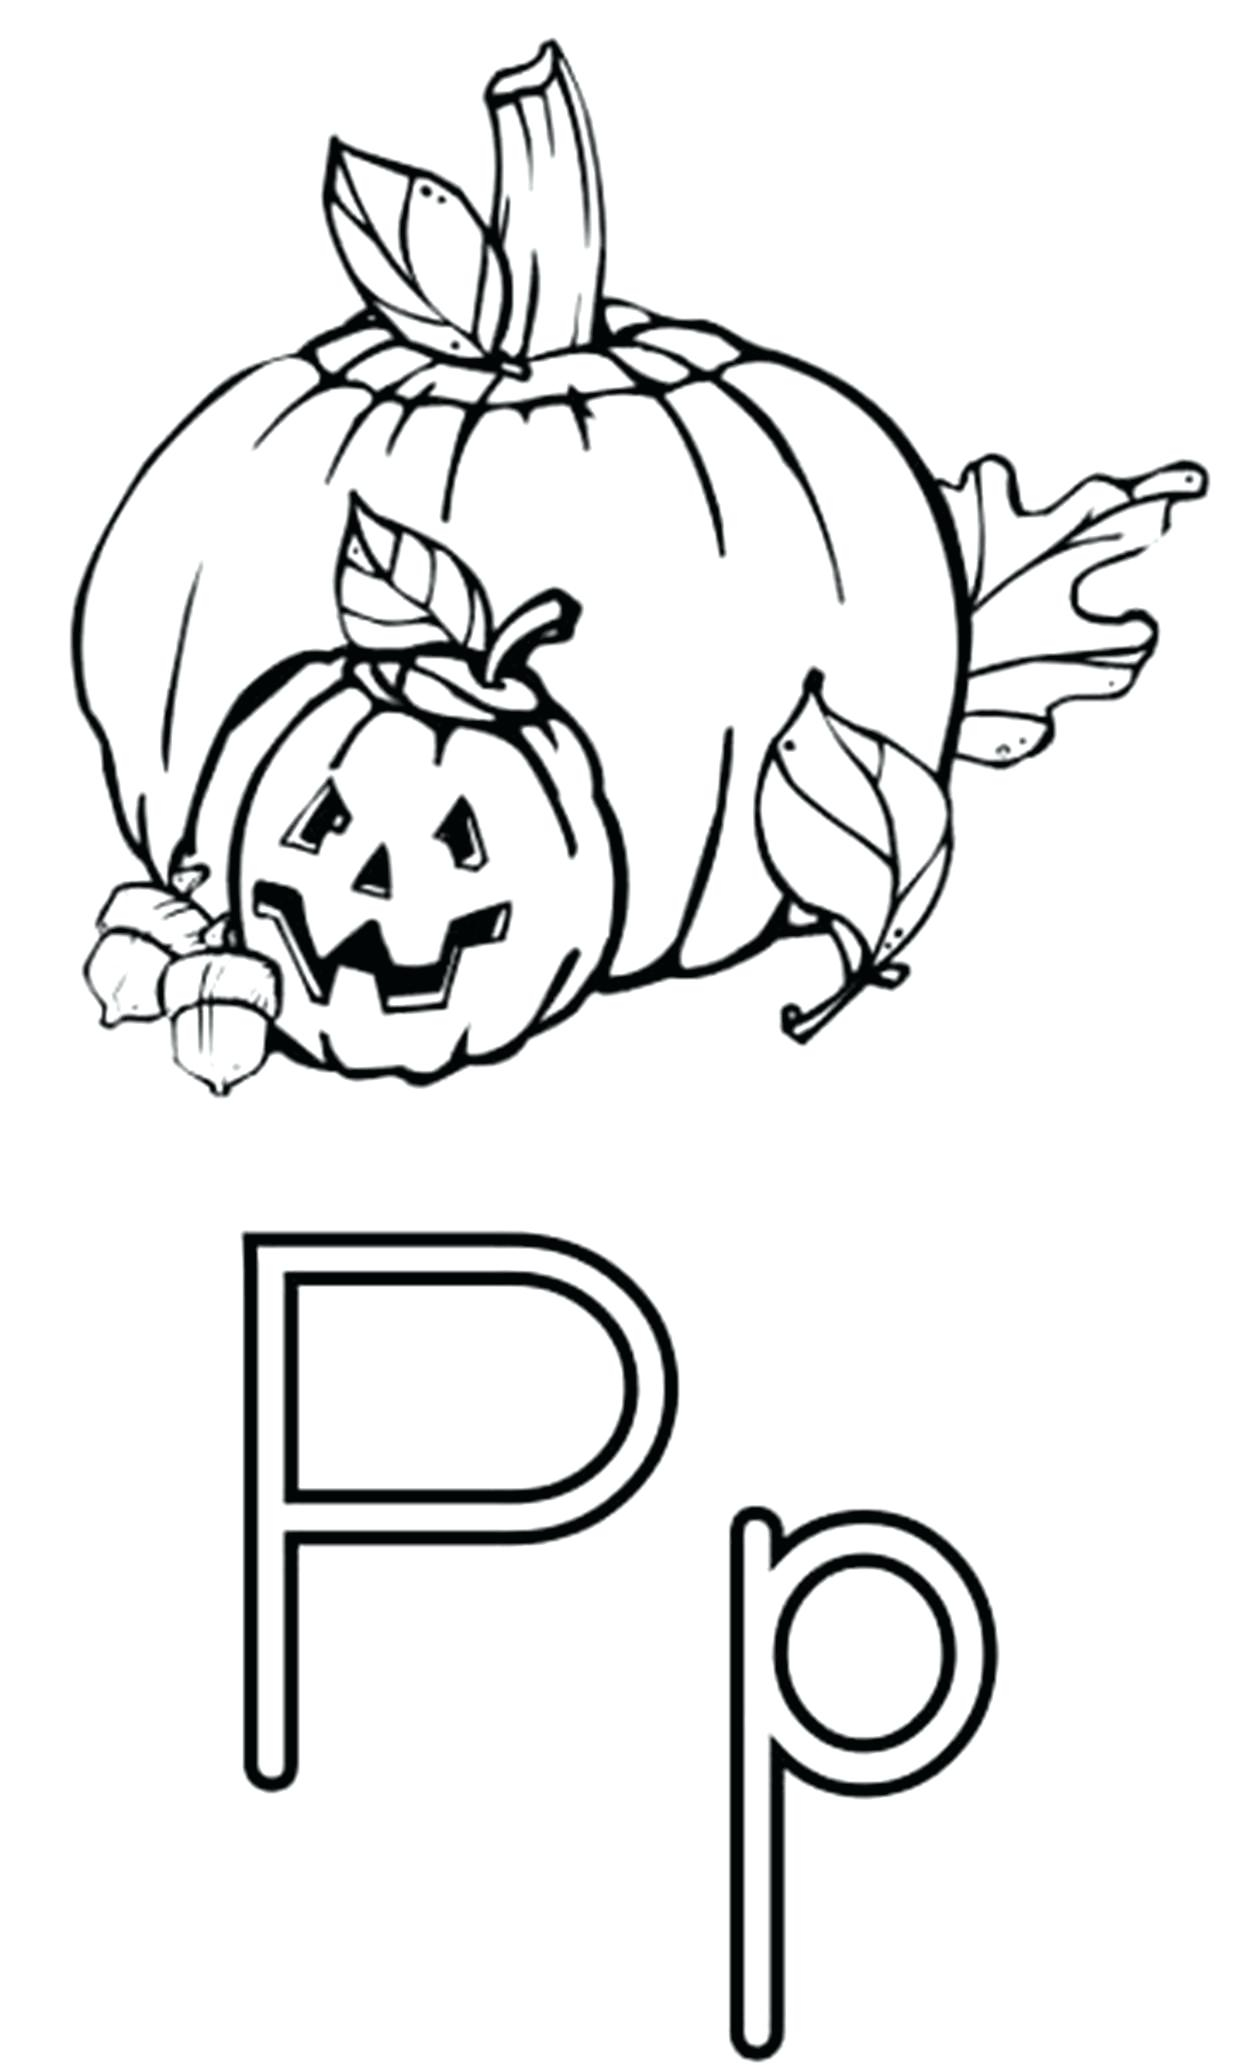 1252x2070 Awesome Letter P Coloring Pages Gallery Printable Coloring Sheet